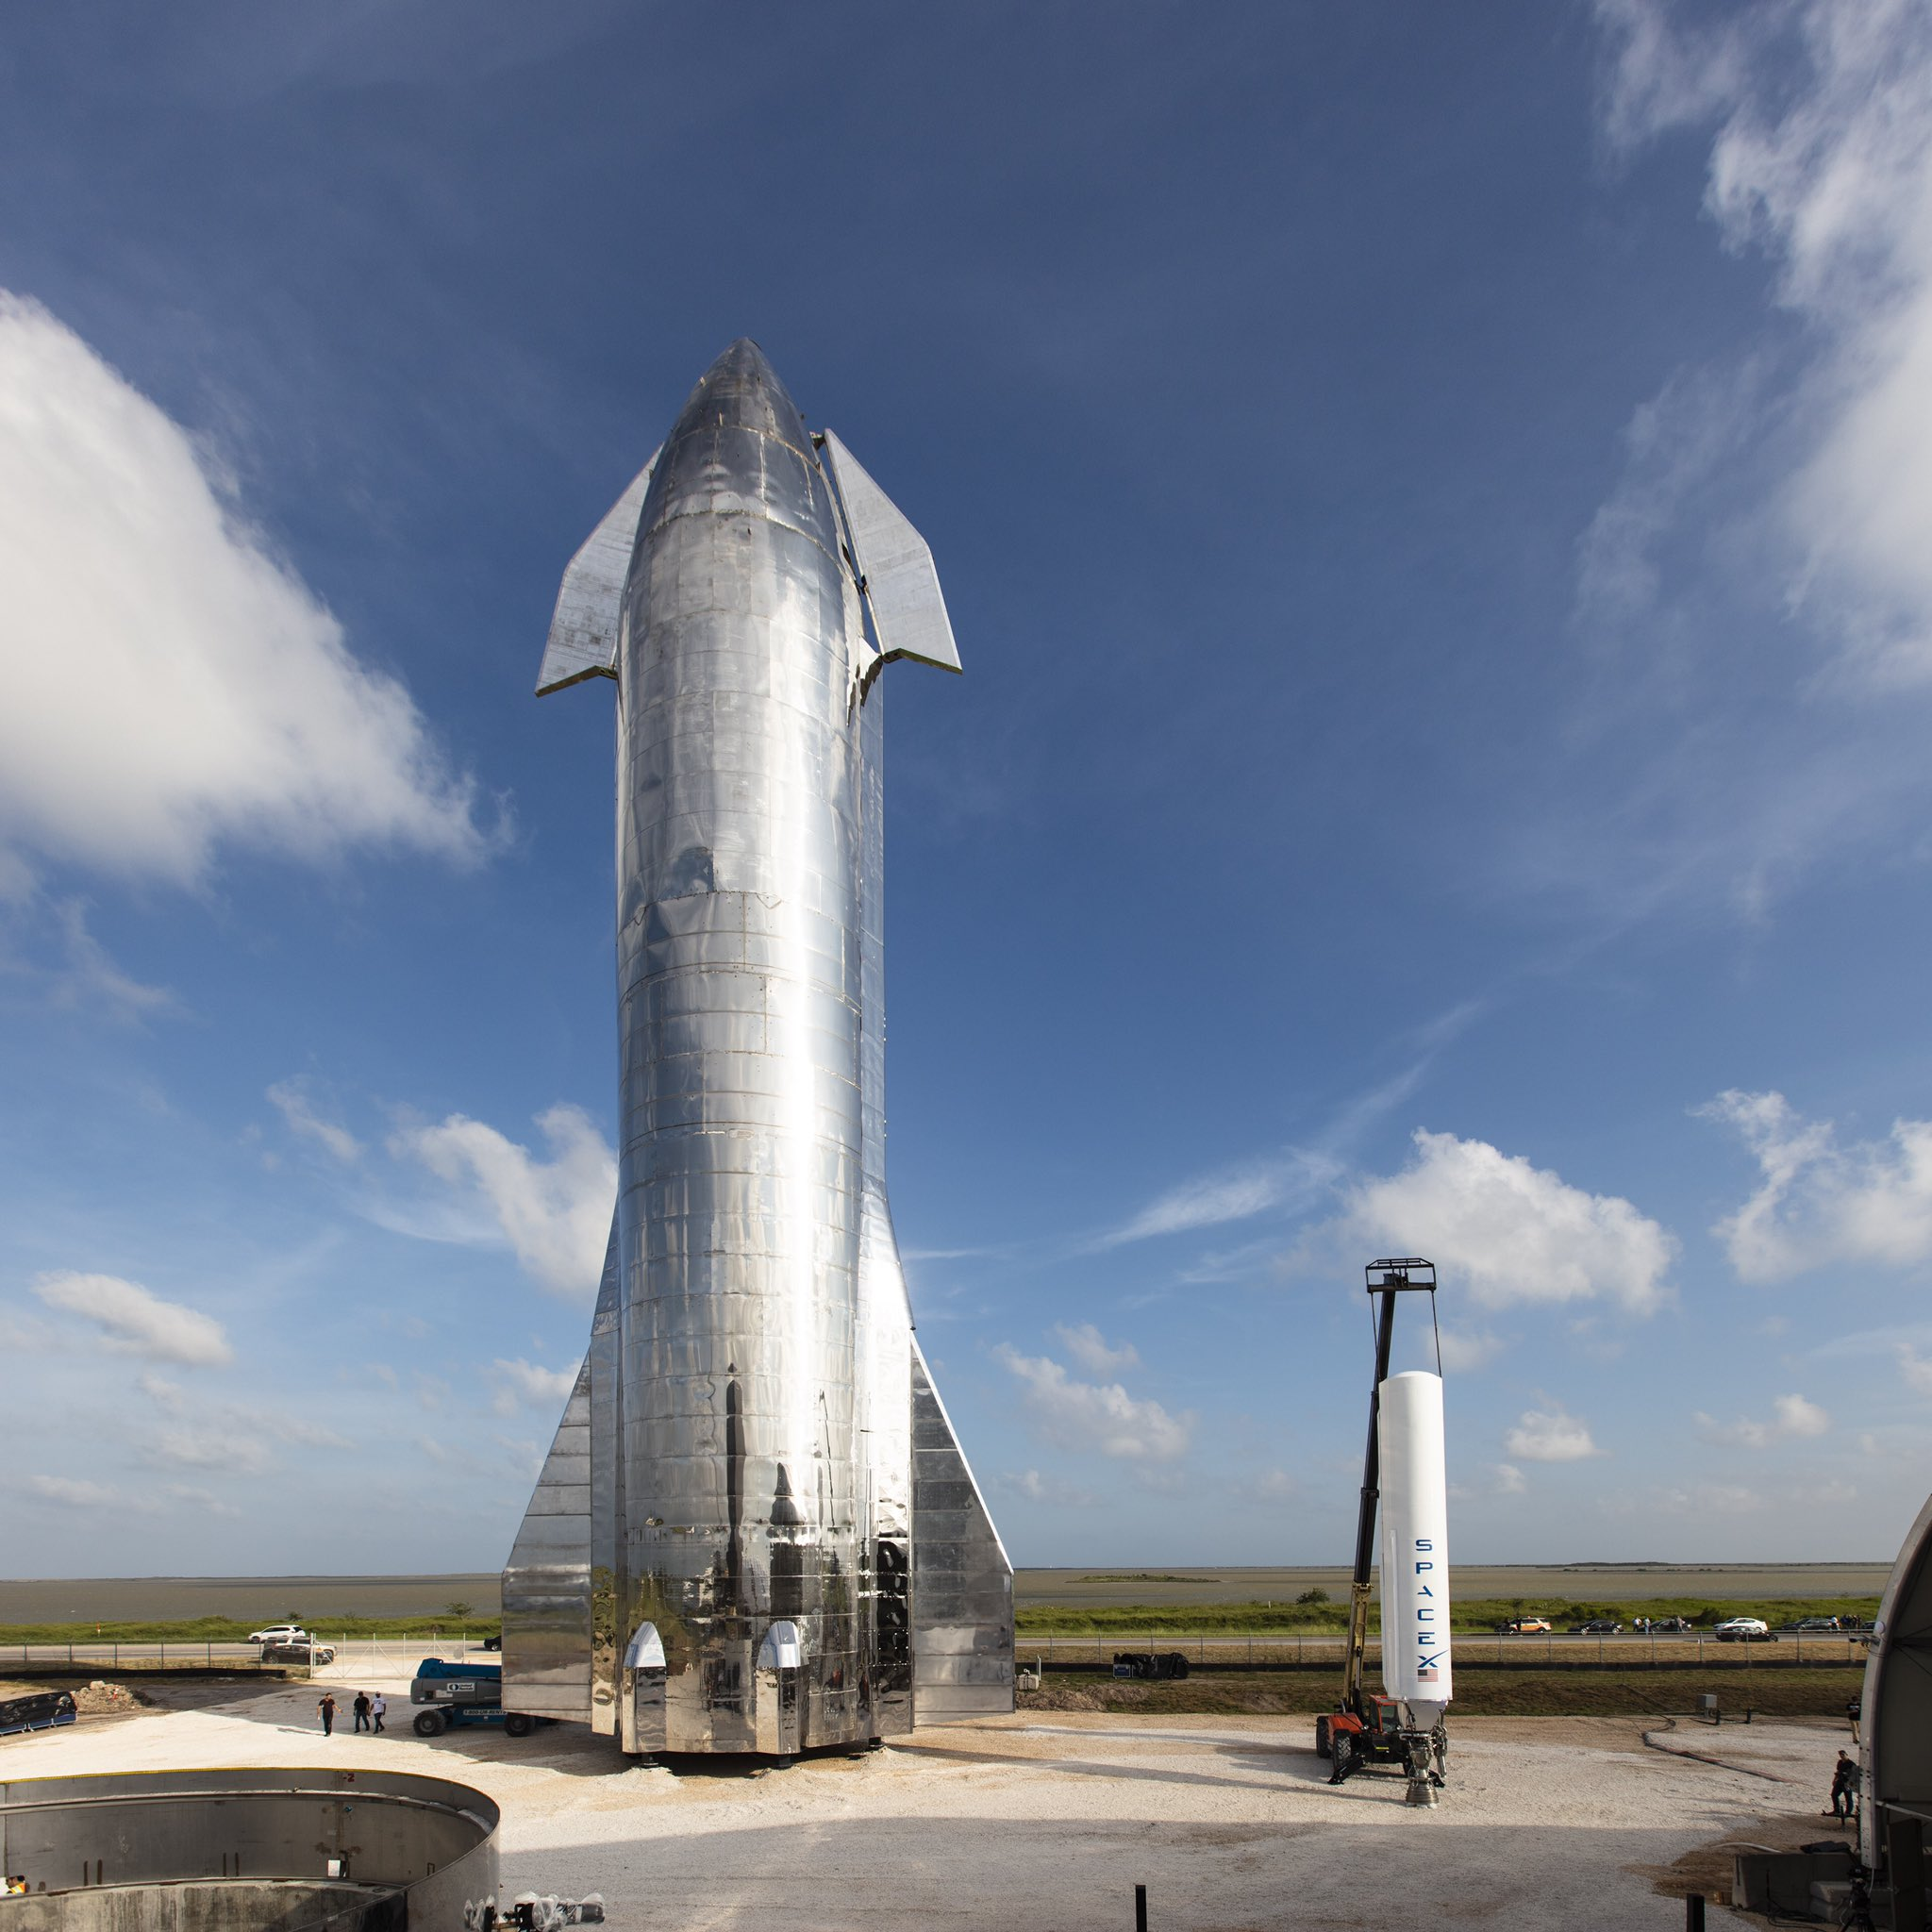 SpaceX Stainless Steel Starship Prototype